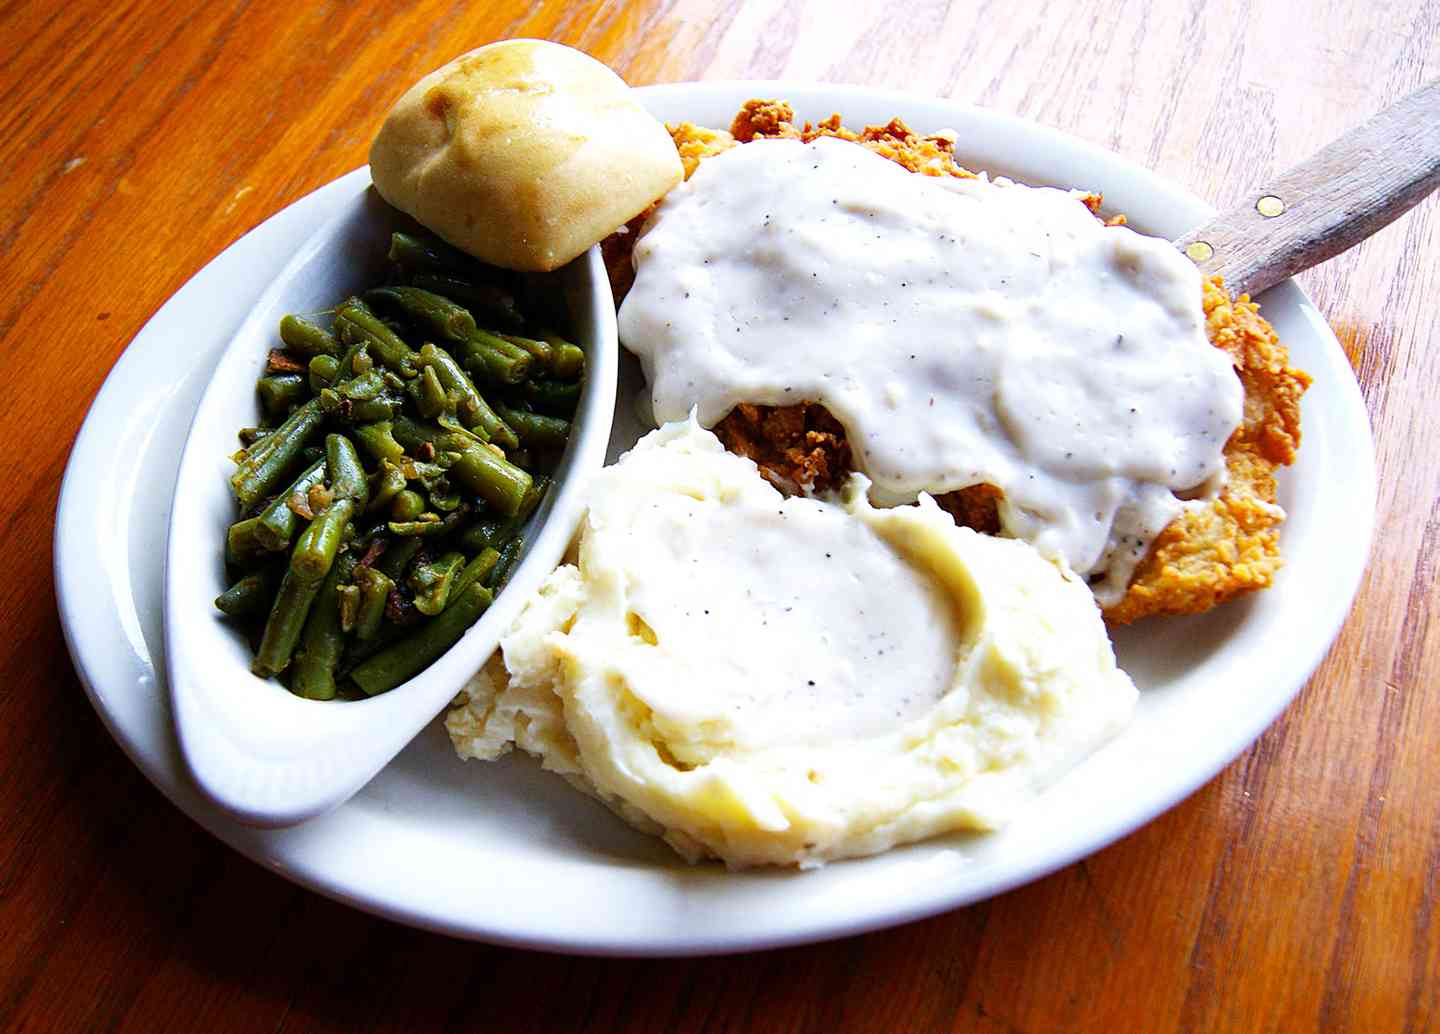 Southern Fried Steak